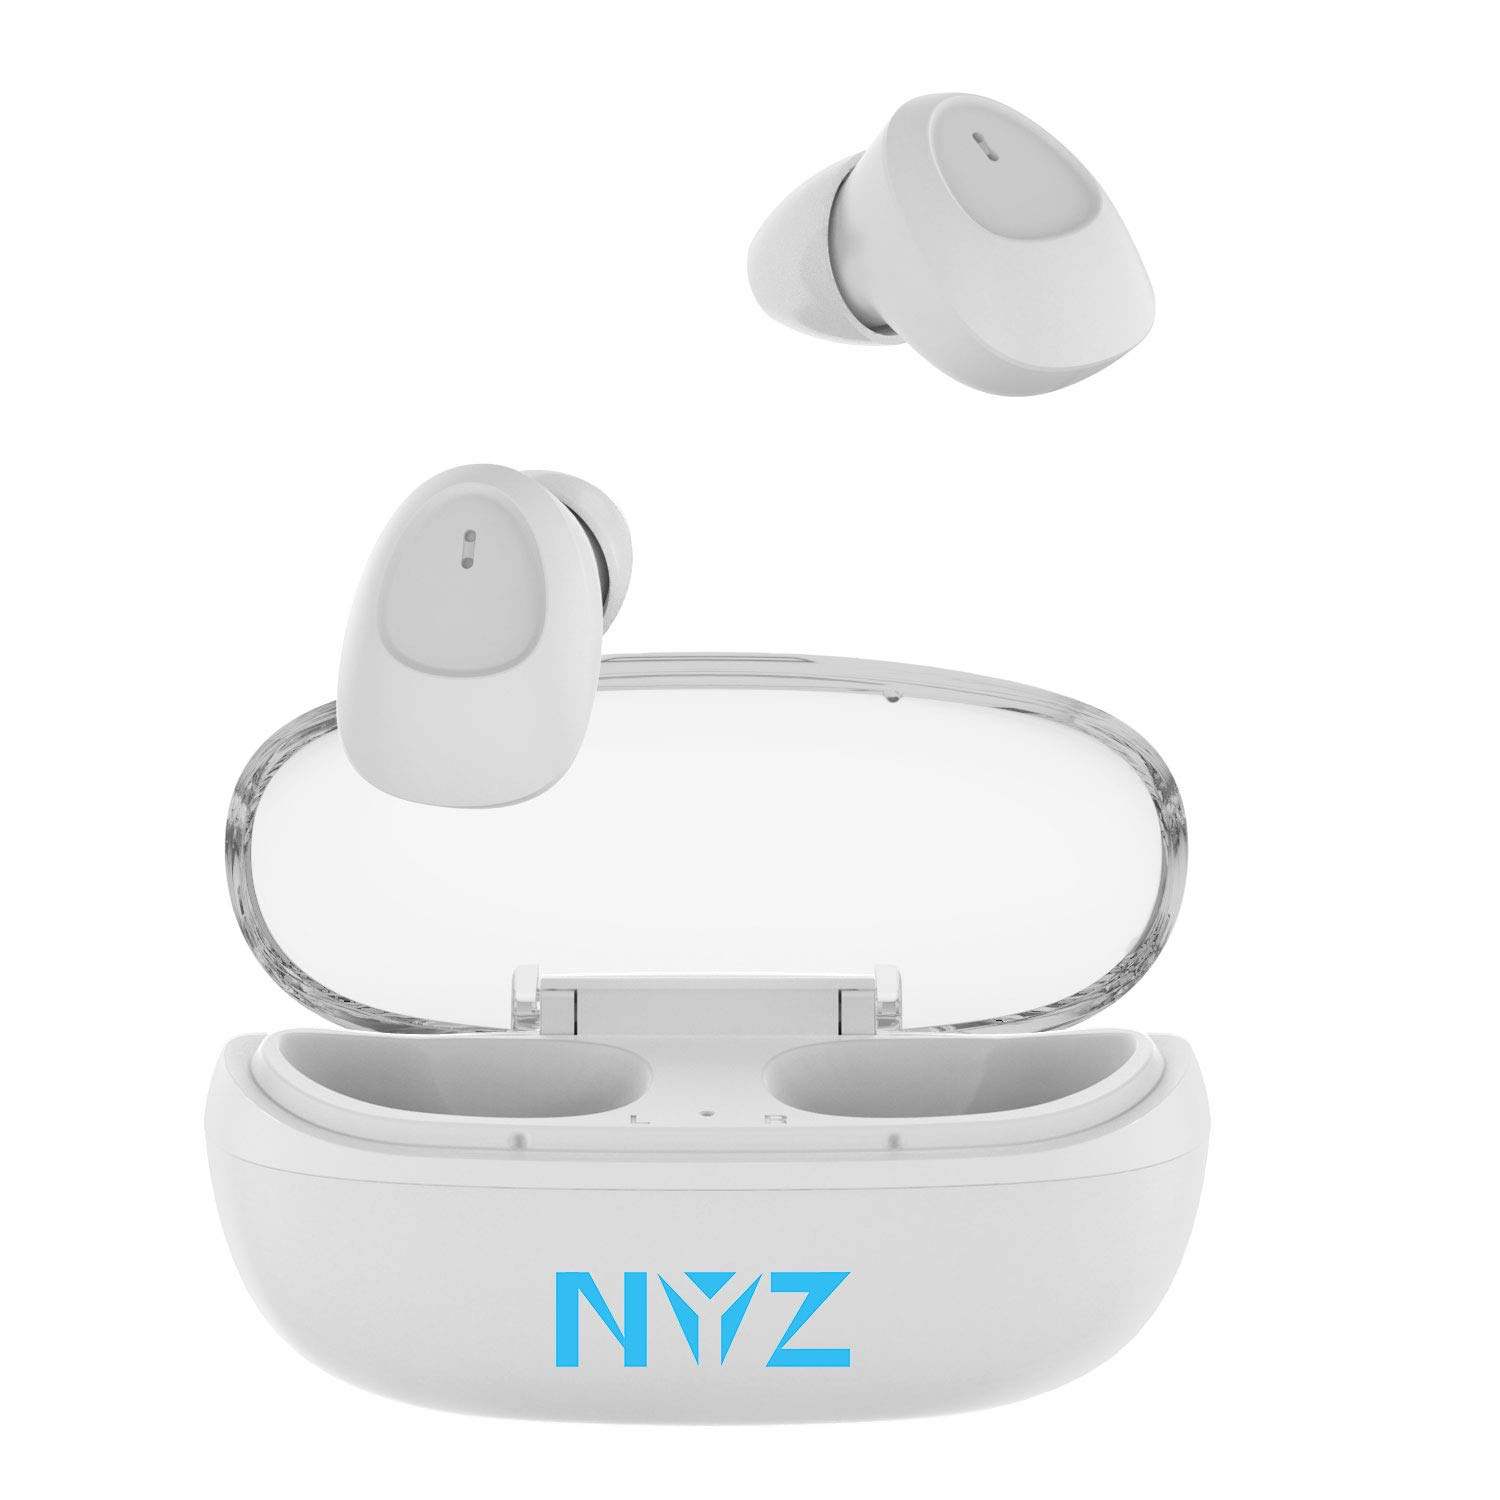 wireless-earbuds-nyz-true-wireless-bluetooth-headphones-in-ear-earphones-hifi-stereo-volume-control-cordless-earbuds-with-microphone-portable-charging-case-for-iphoneandroidwindows-space